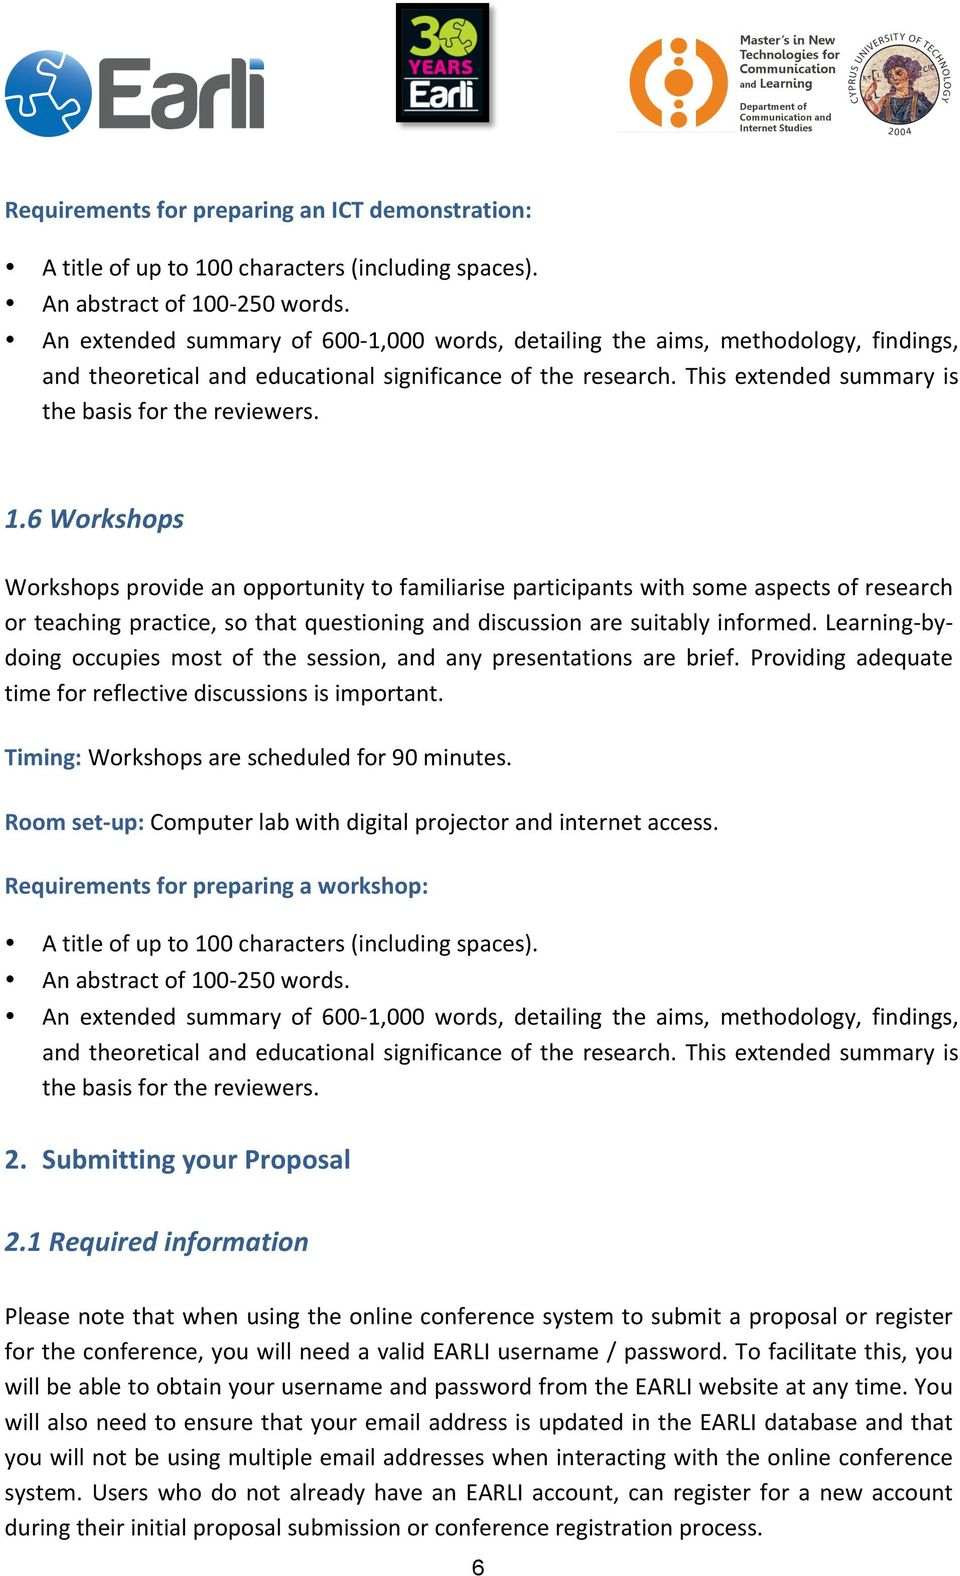 1.6 Workshops Workshops provide an opportunity to familiarise participants with some aspects of research or teaching practice, so that questioning and discussion are suitably informed.